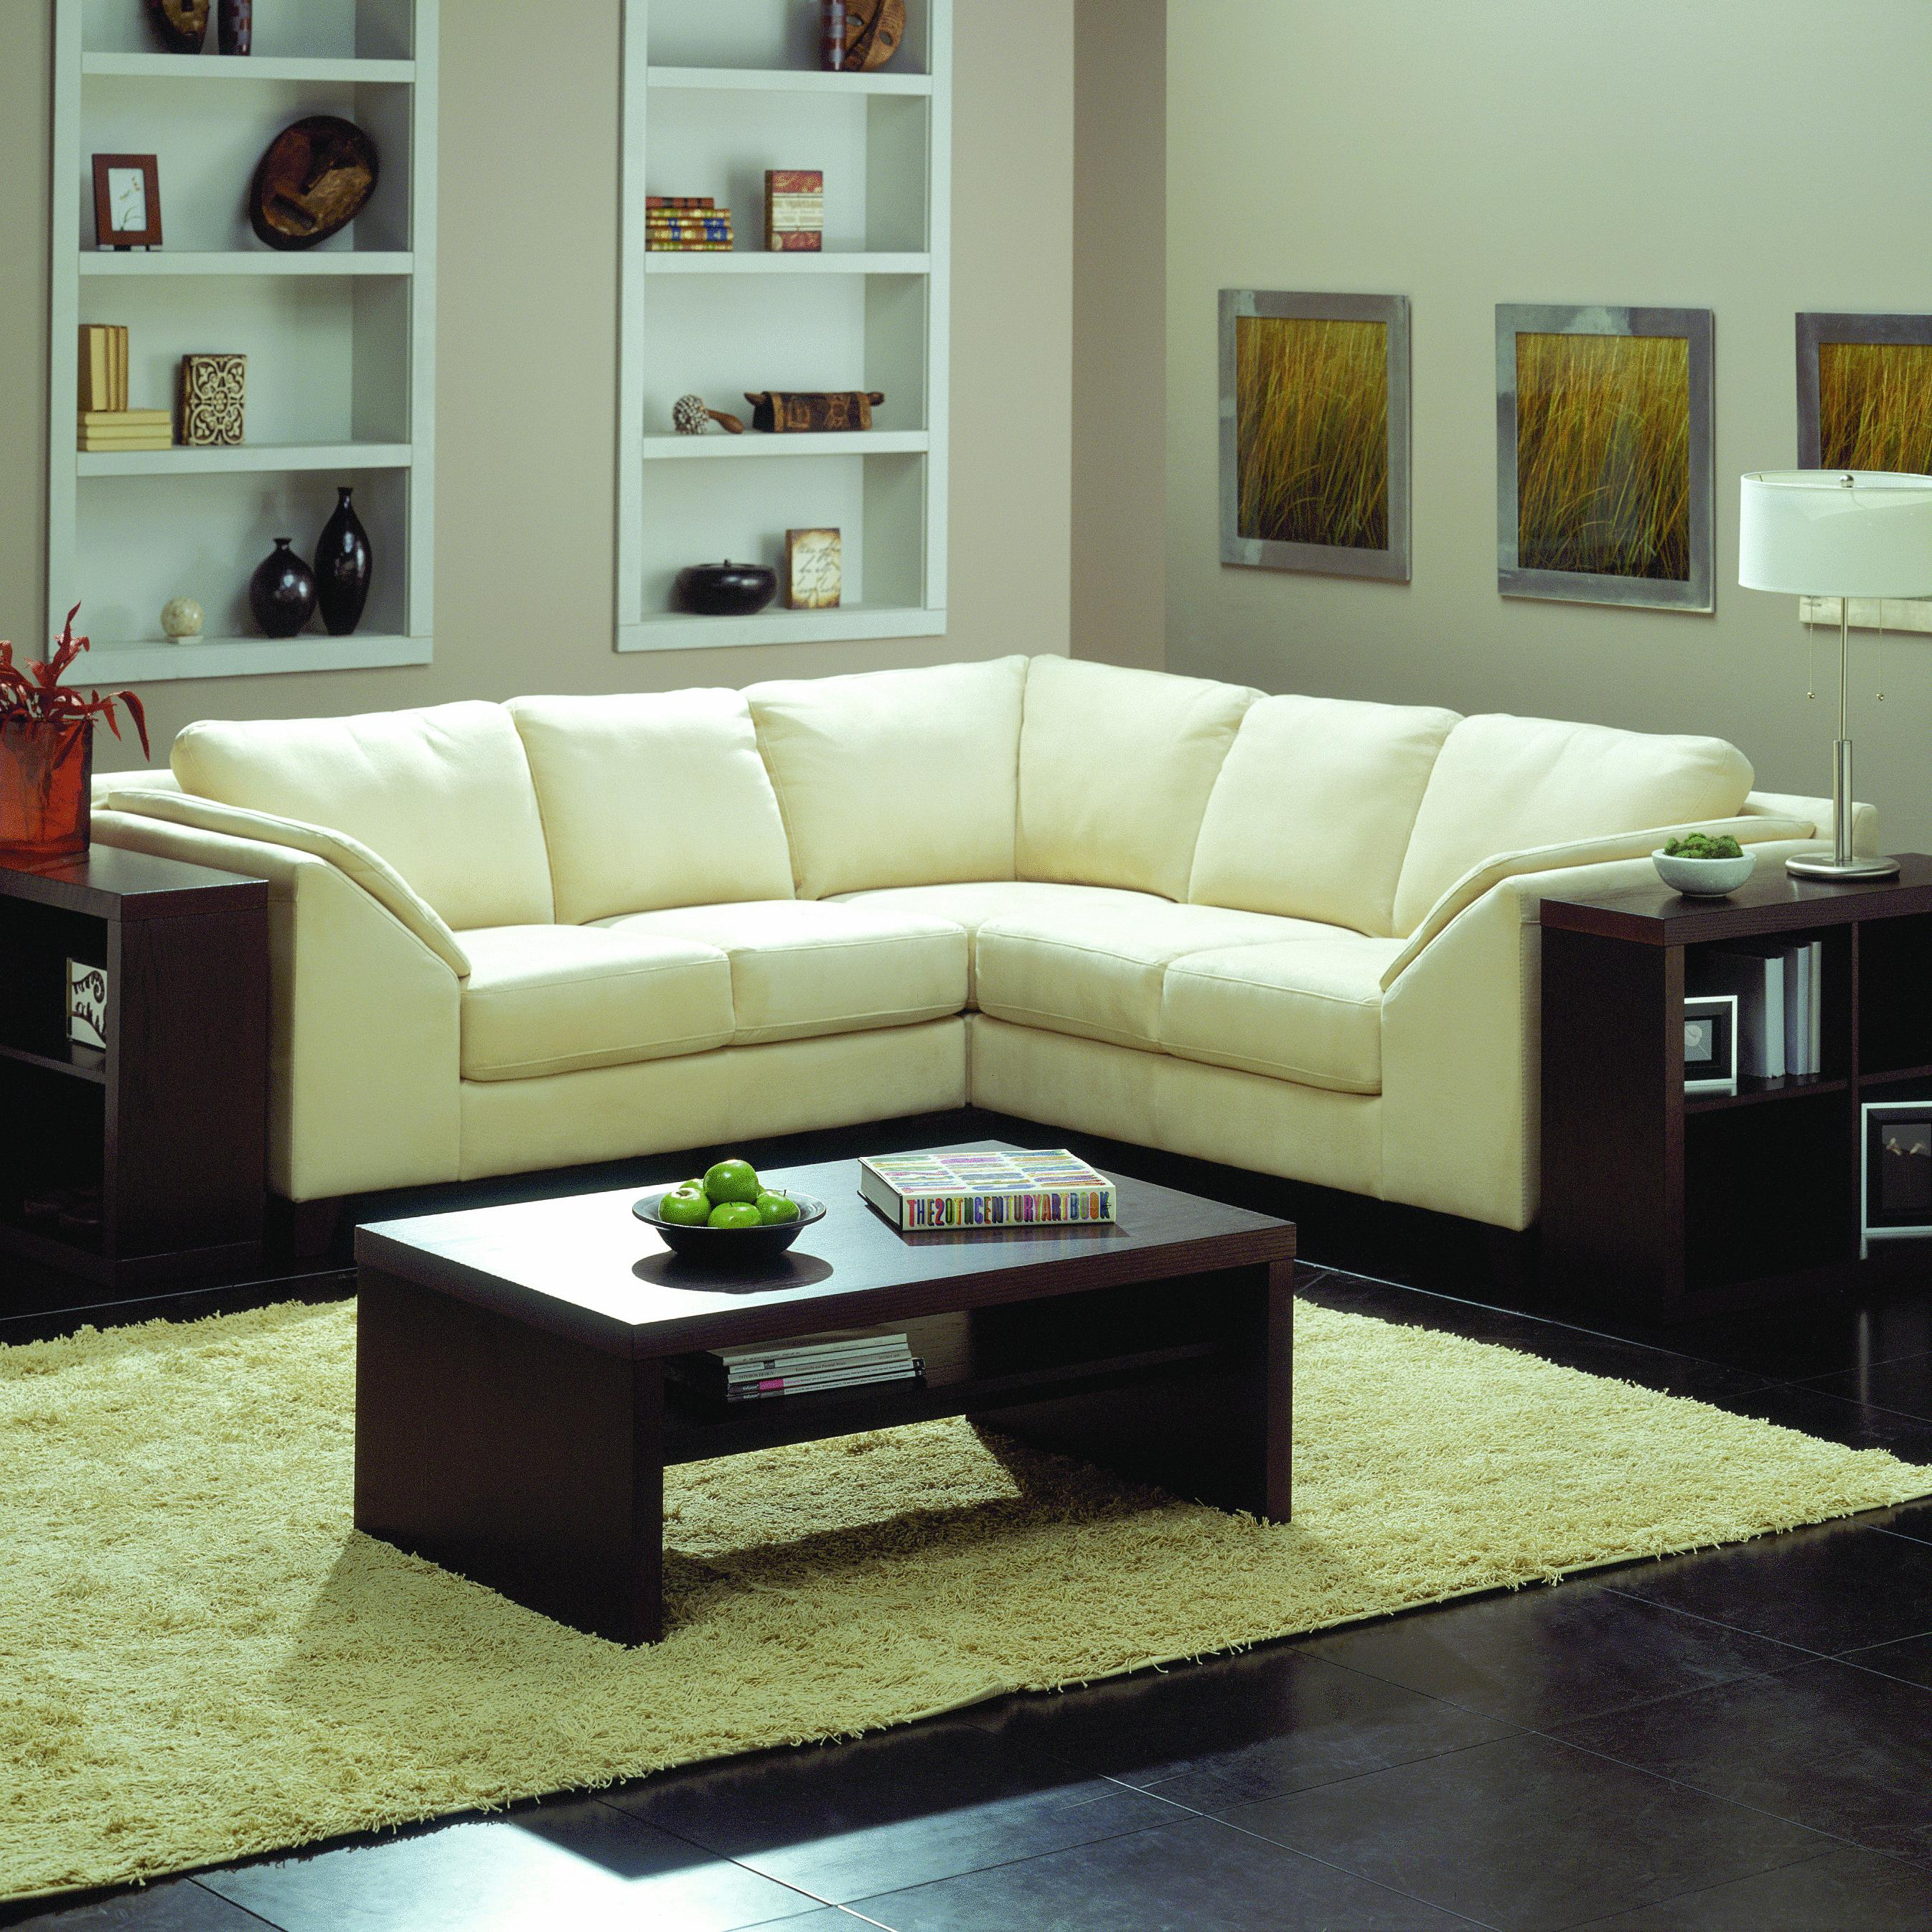 slip sofa couches modern pin rotmans cover nice good your for couch